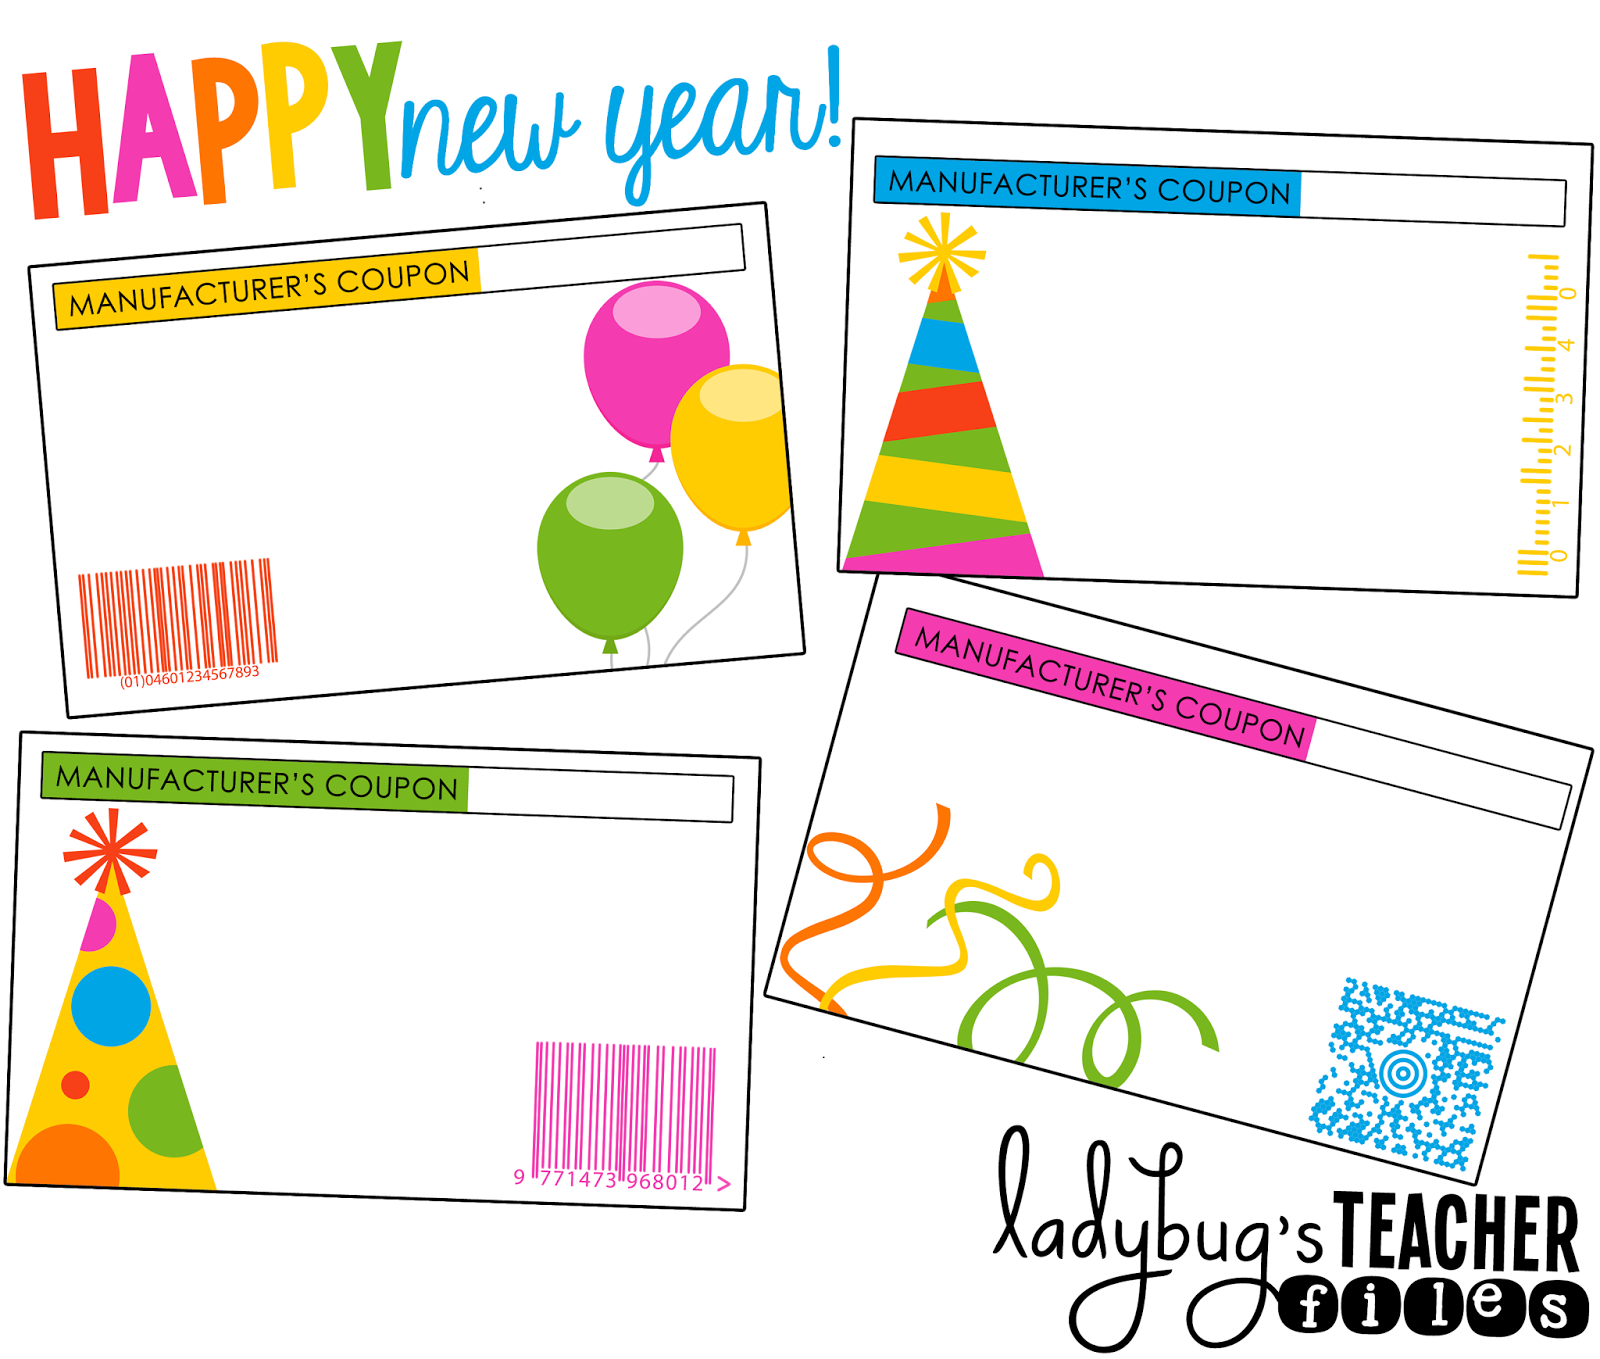 2014 ladybug s teacher files ladybug s teacher files editable holiday coupons for student gifts